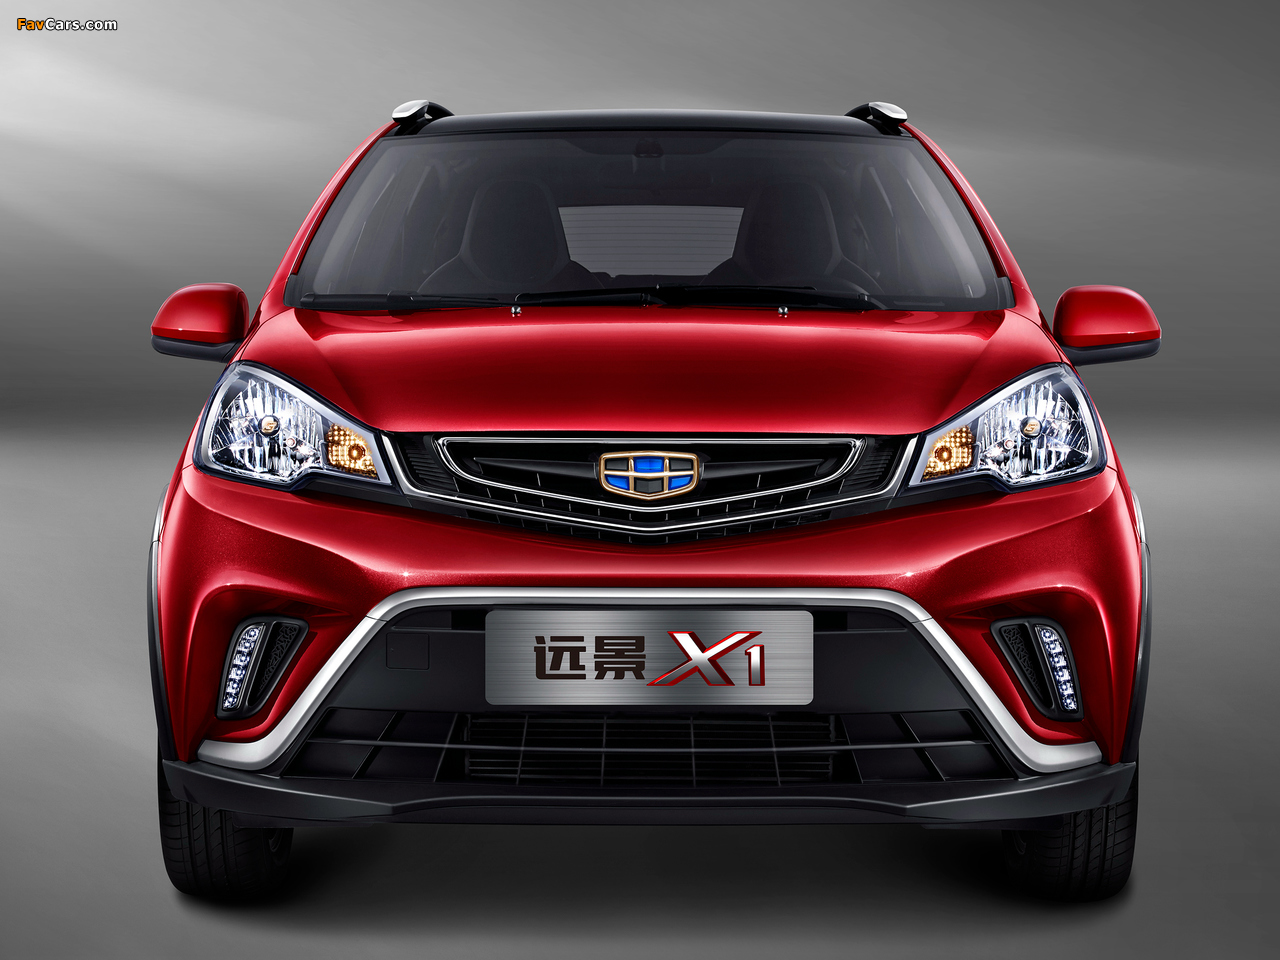 Geely Vision X1 2017 wallpapers (1280 x 960)